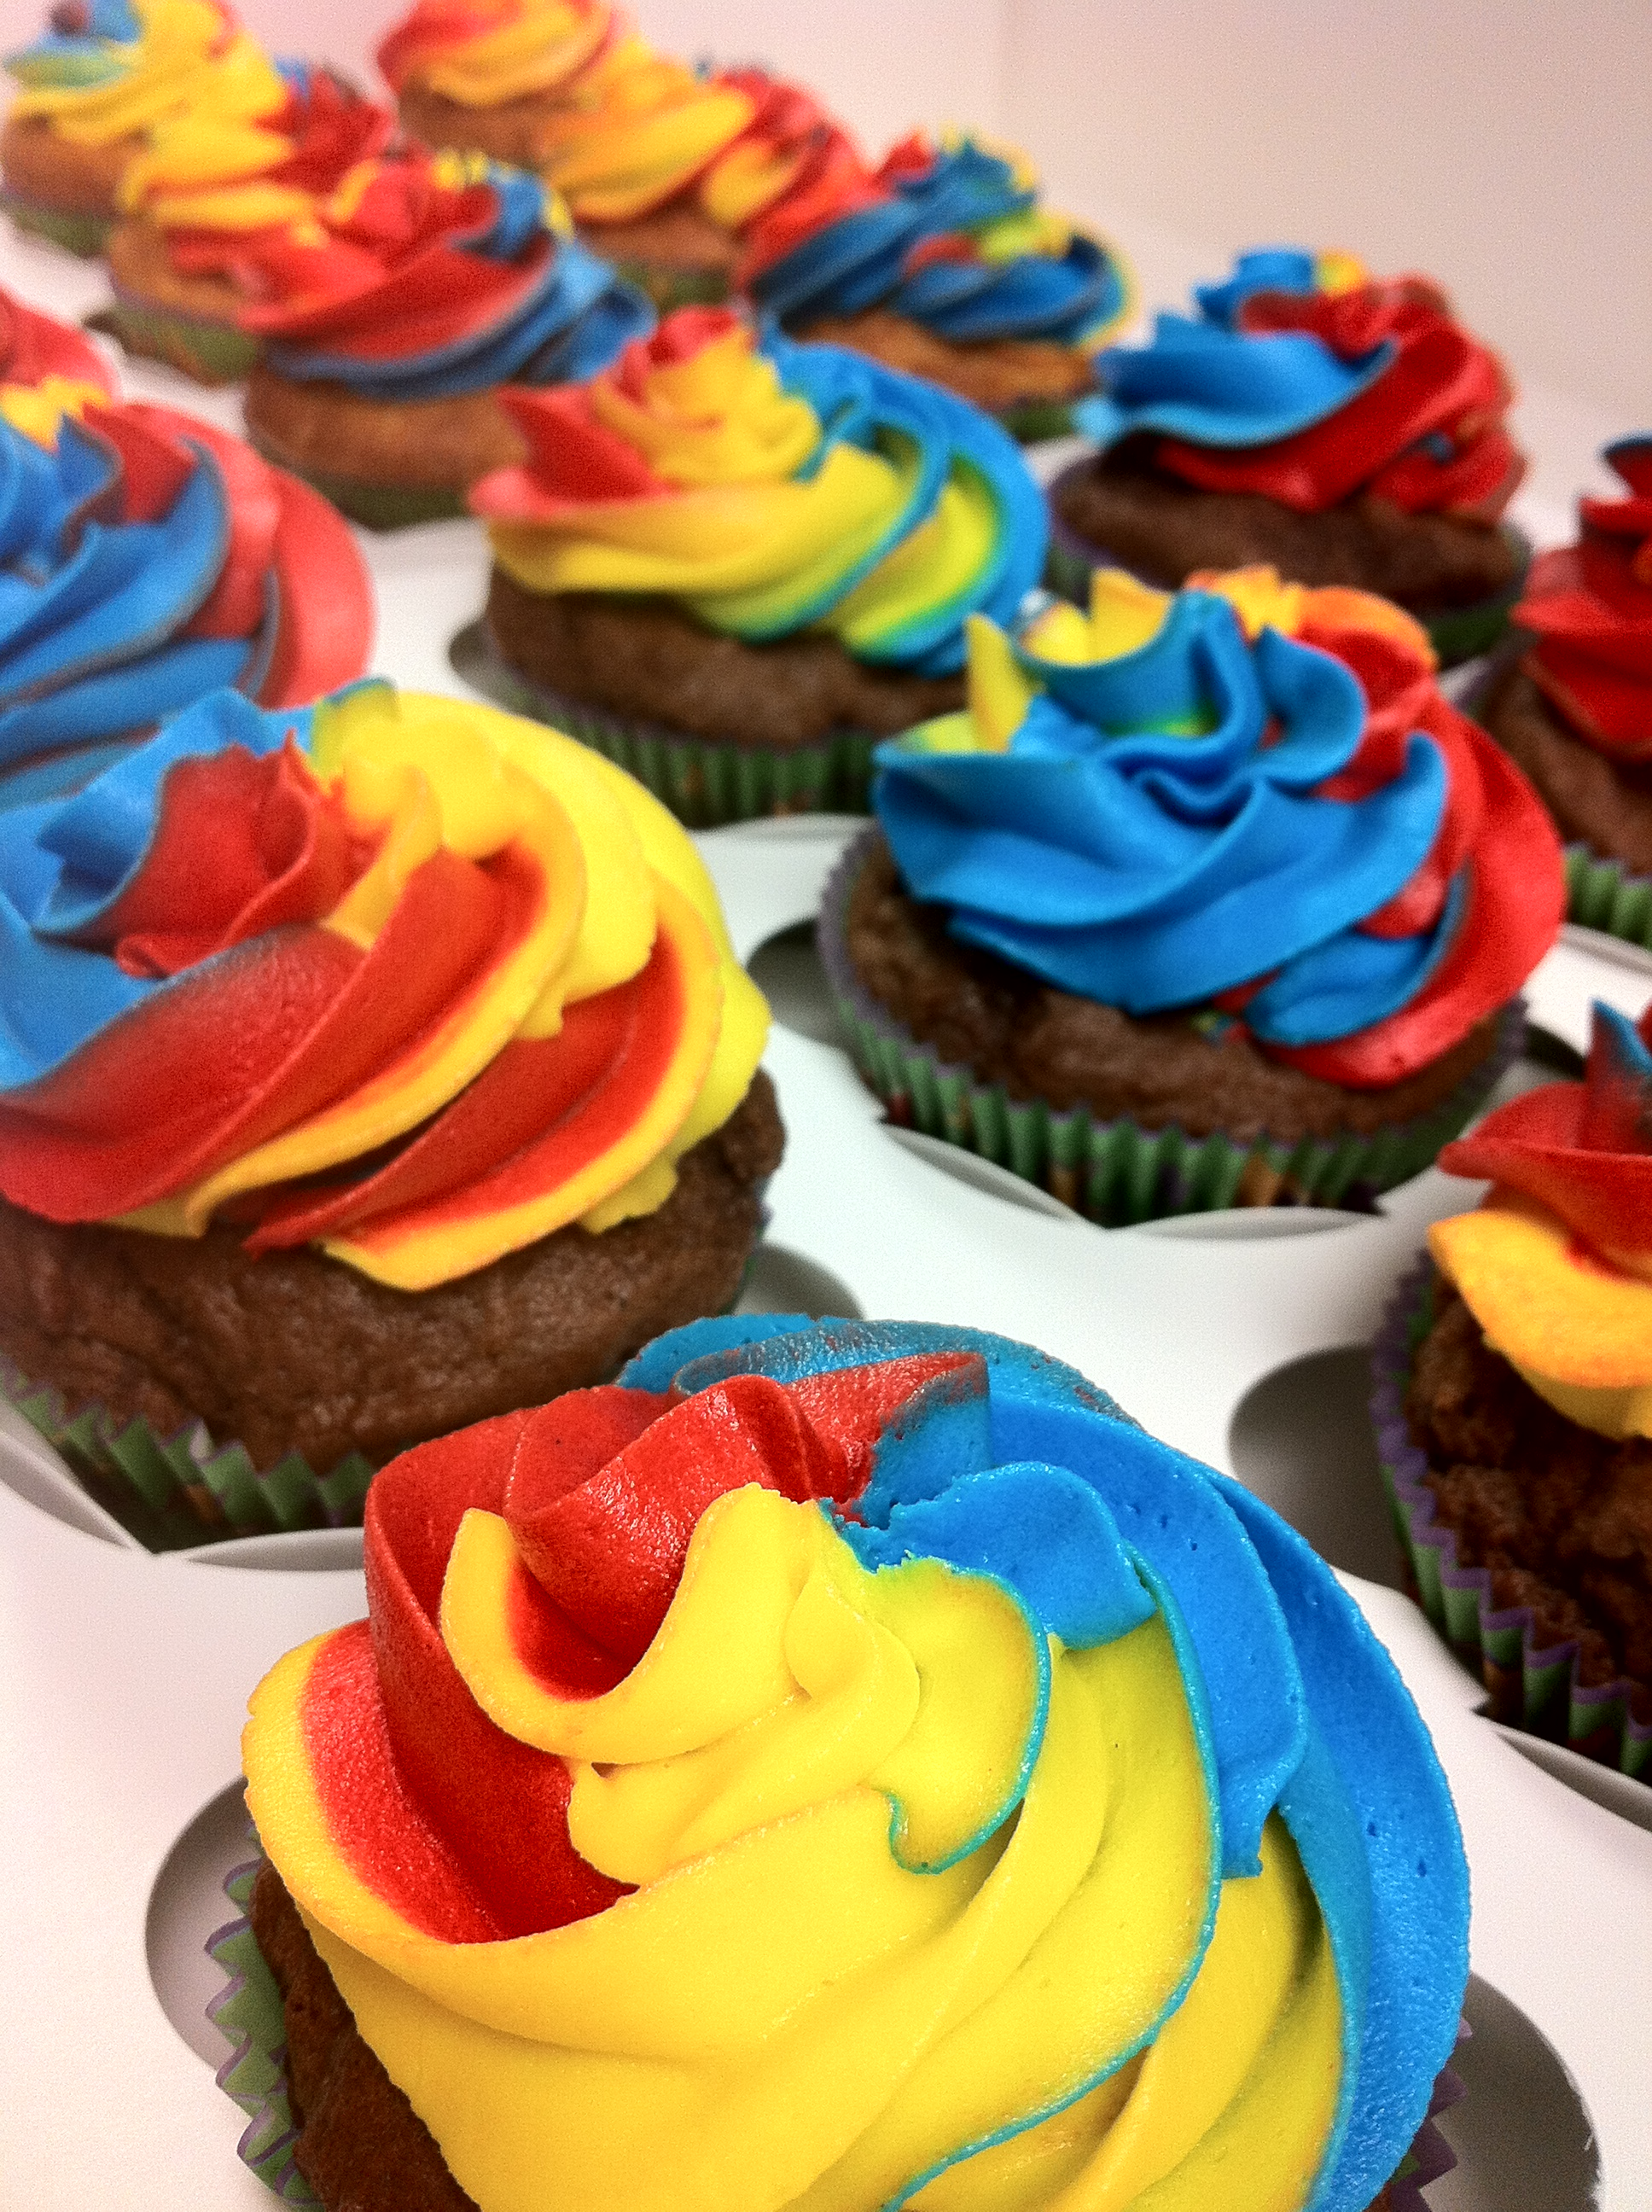 Cupcakes – Lolo's Cakes & Sweets